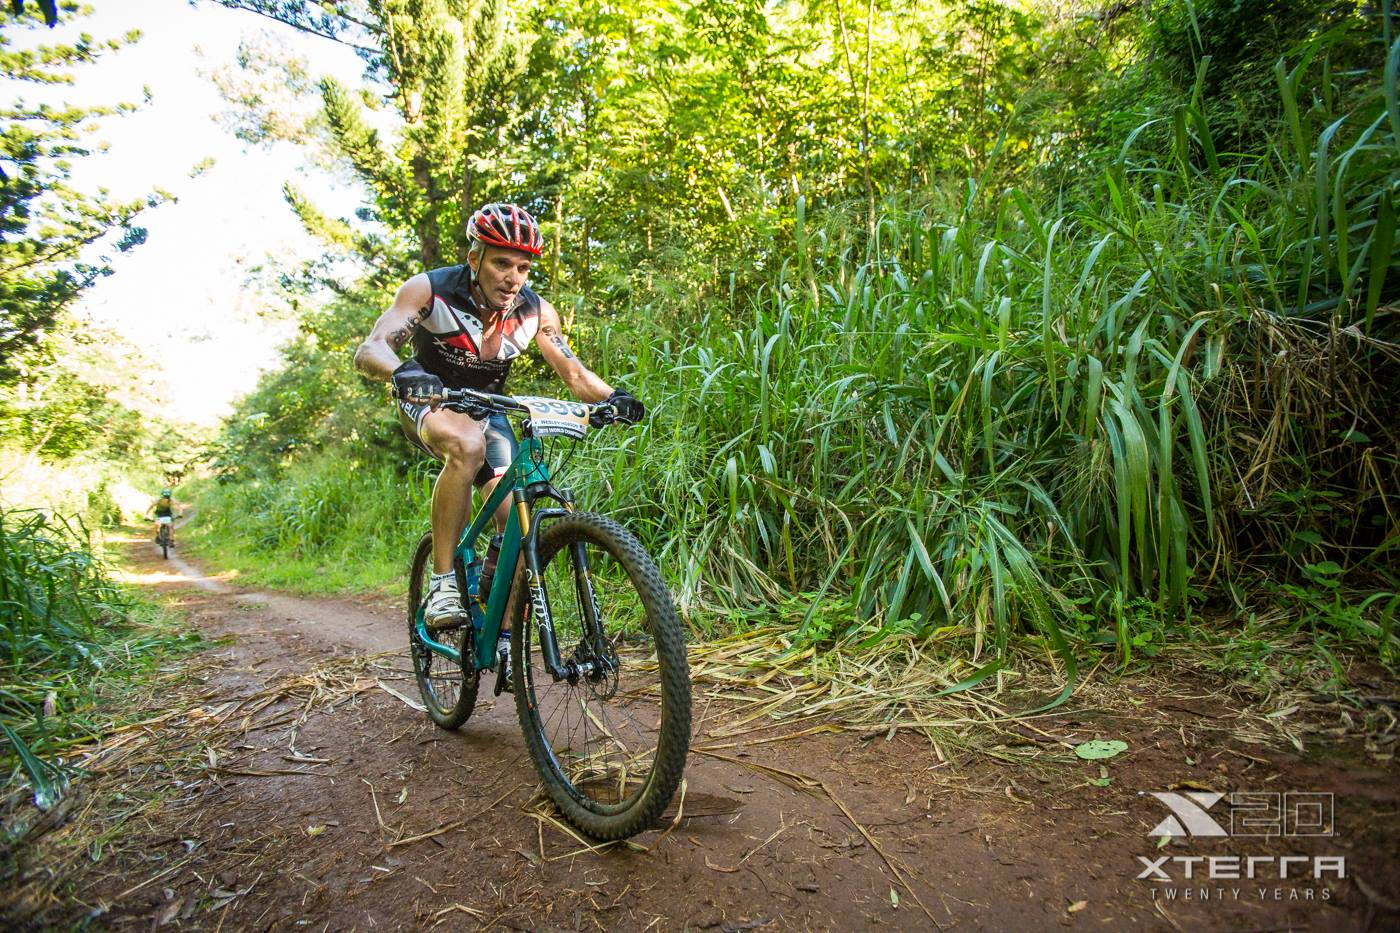 XTERRA_WORLD_CHAMPIONSHIP_2015_00025